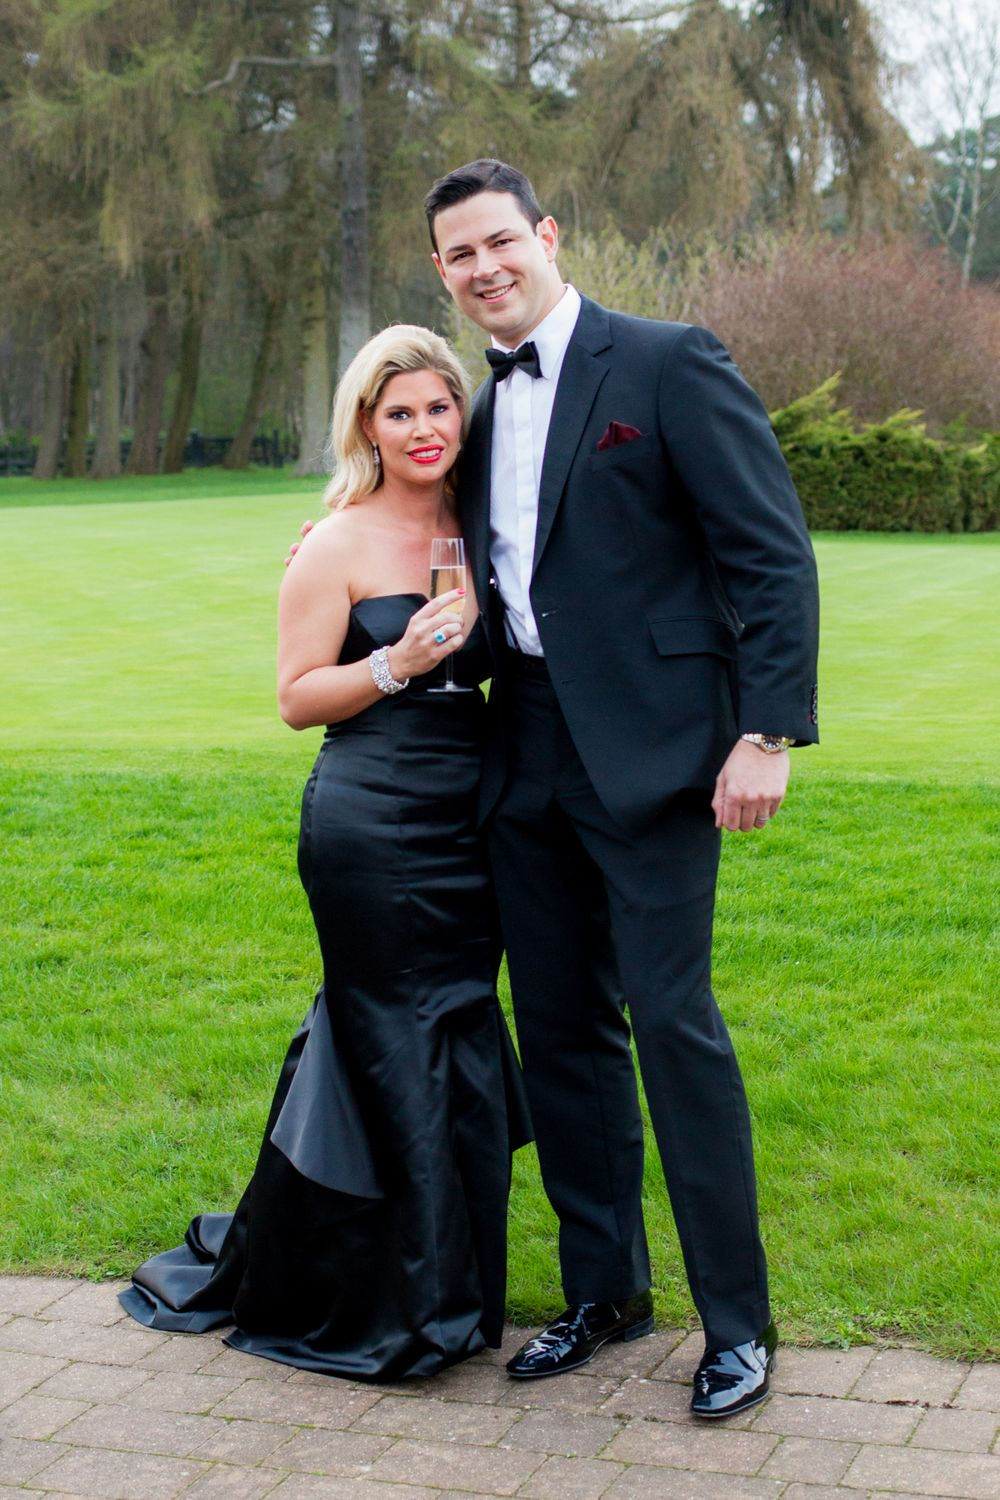 A couple in black tie and evening gown pose with champagne outside a birthday party - Event Photography